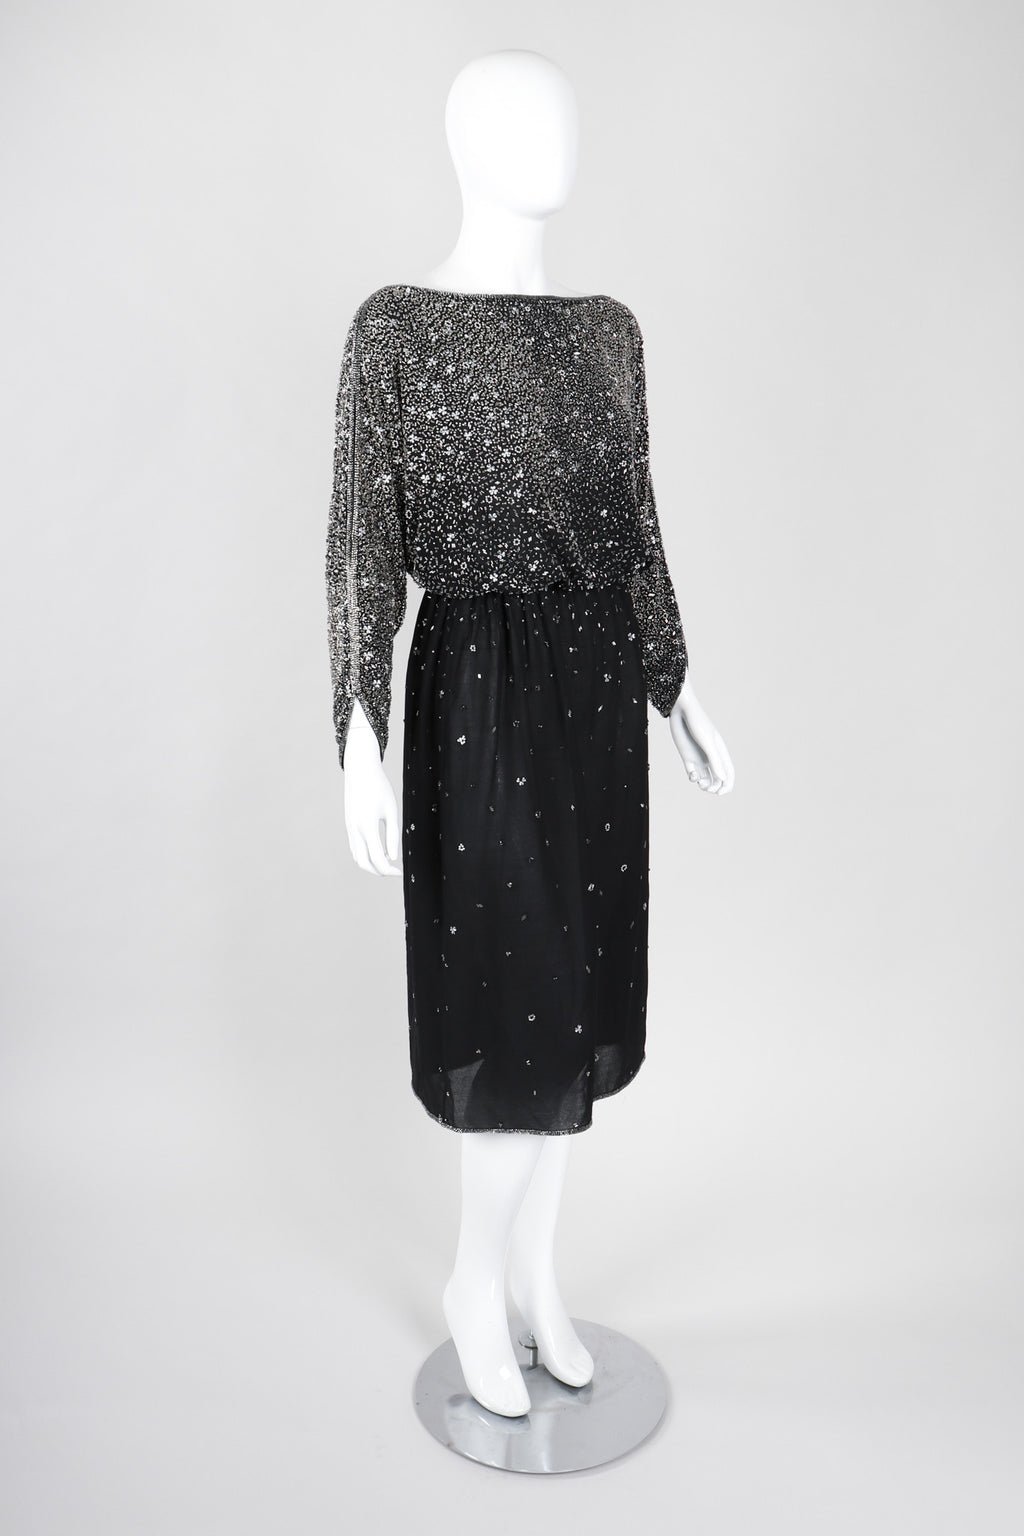 Recess Los Angeles Vintage Rare Halston Beaded Starry Dolman Sleeve Dress